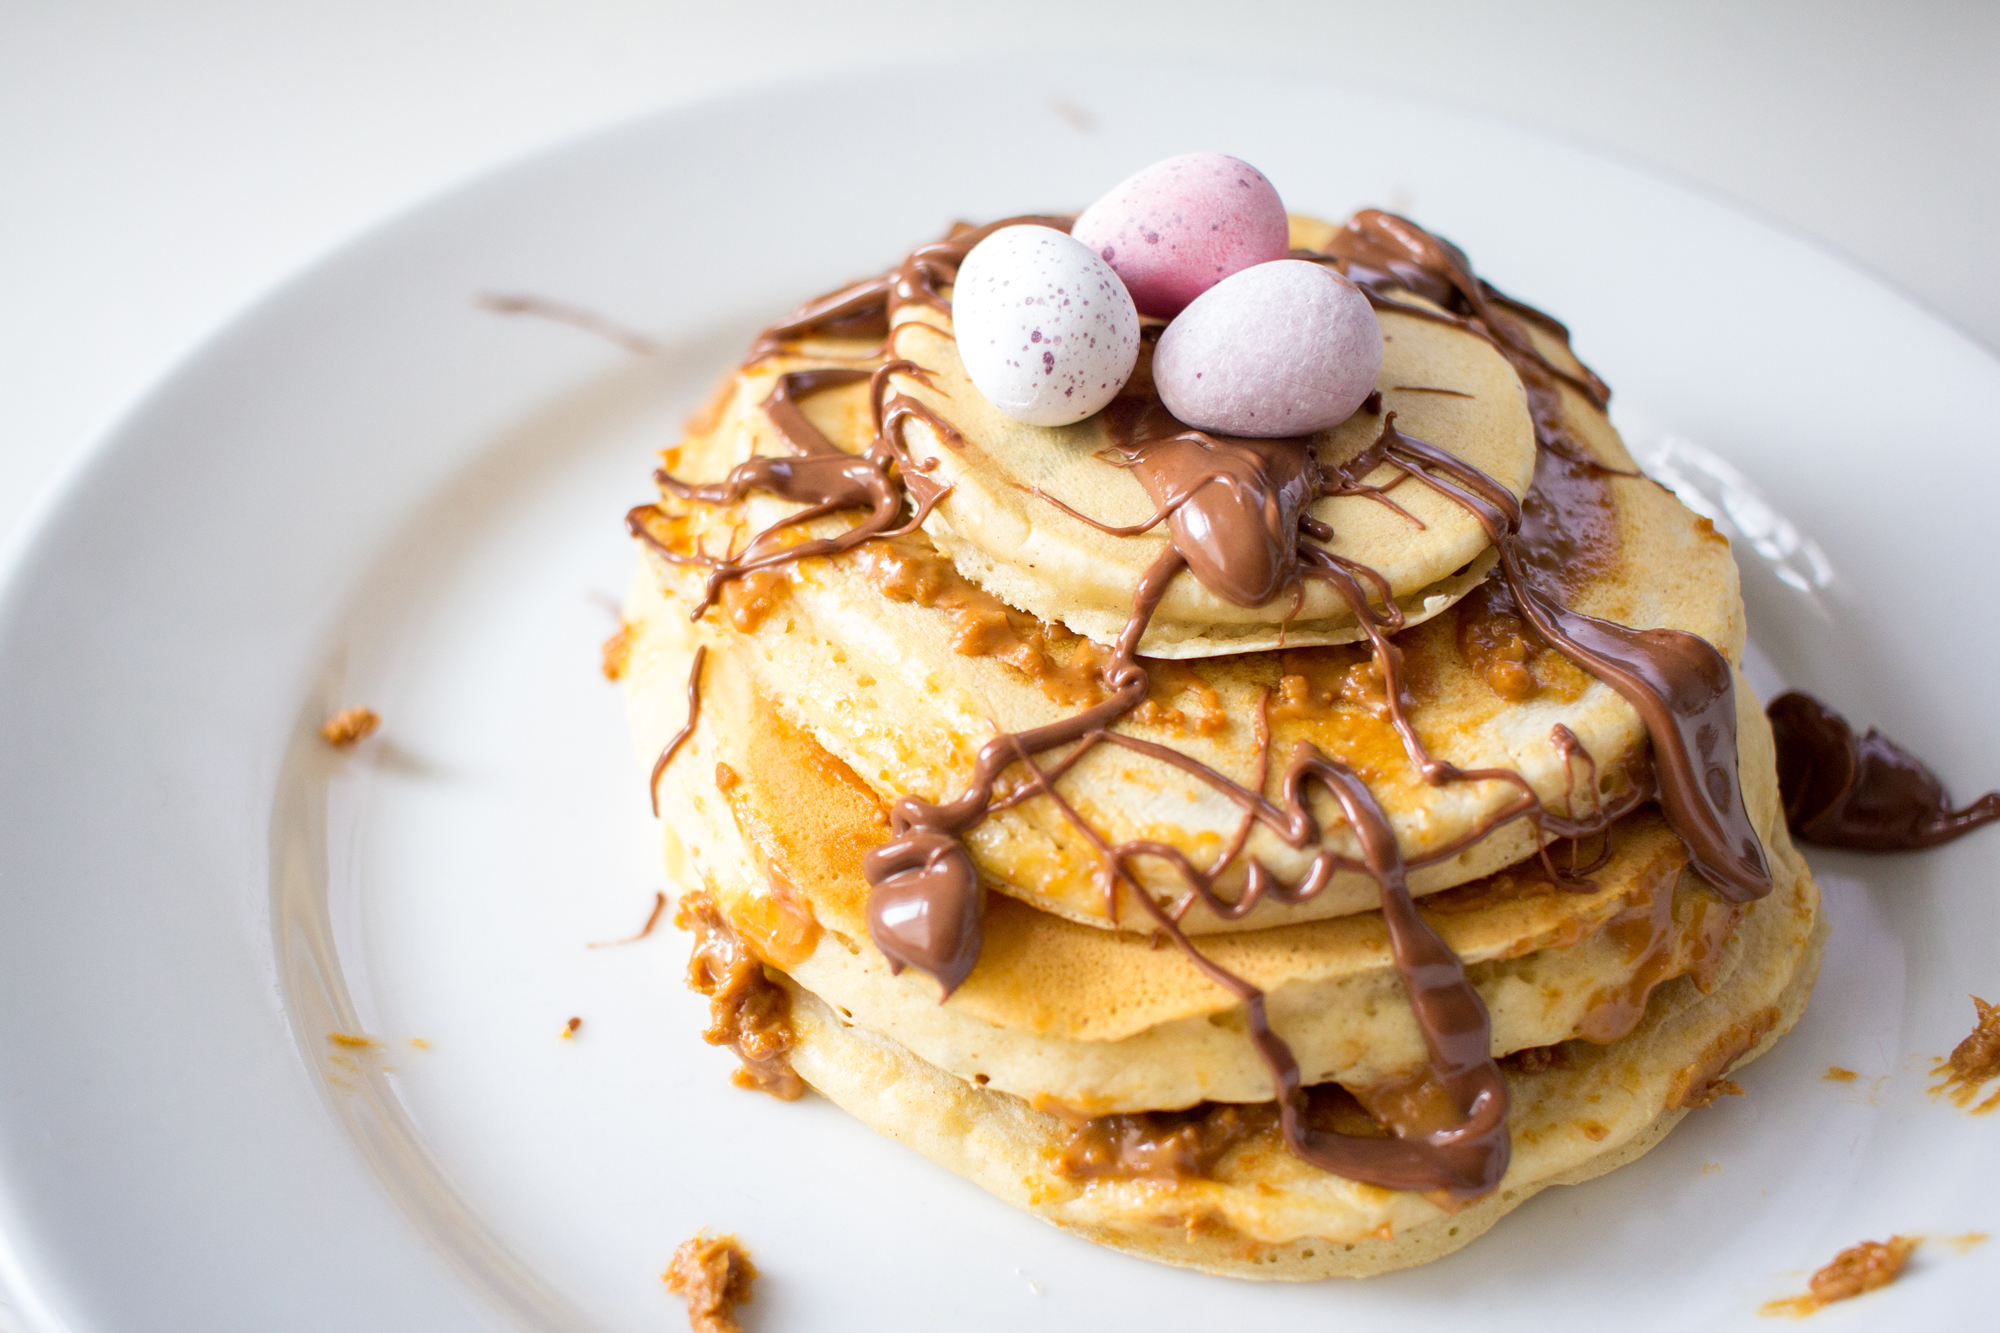 The First Quarter - What's Going on | Easter Sunday Pancakes | awaywithkatie.com